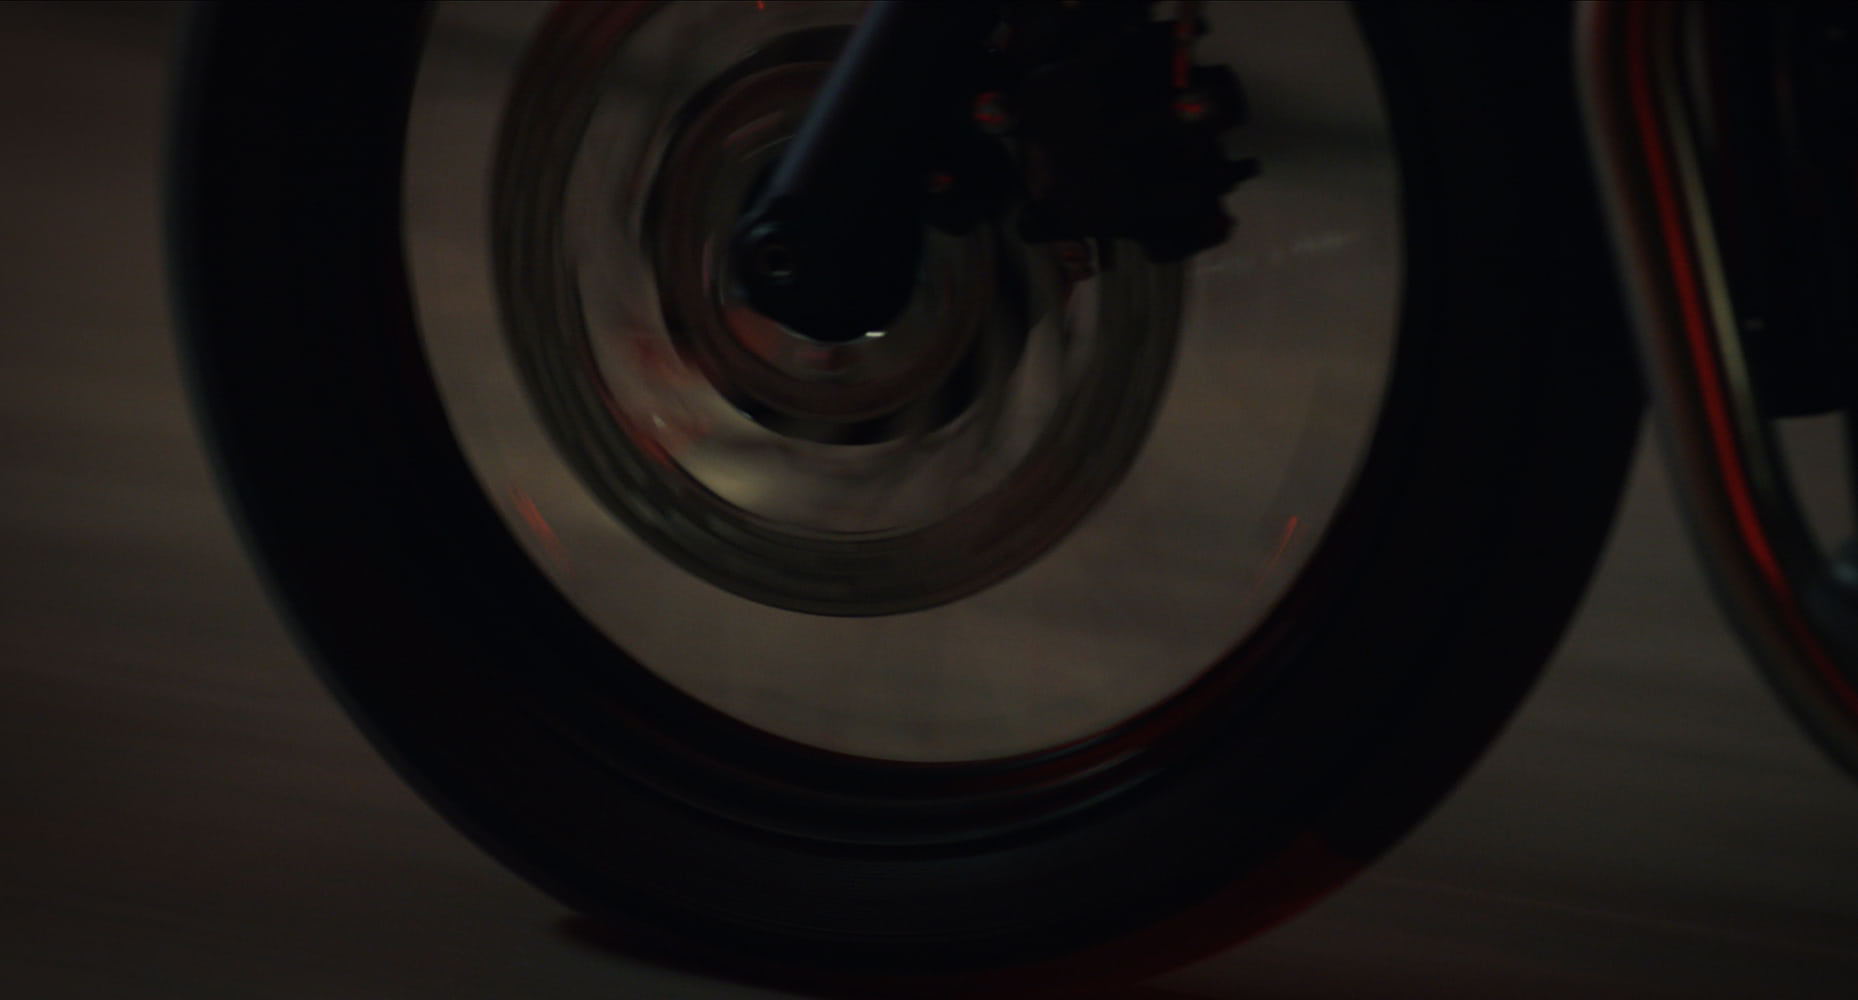 Detail of a motorcycle wheel driving over the ground.